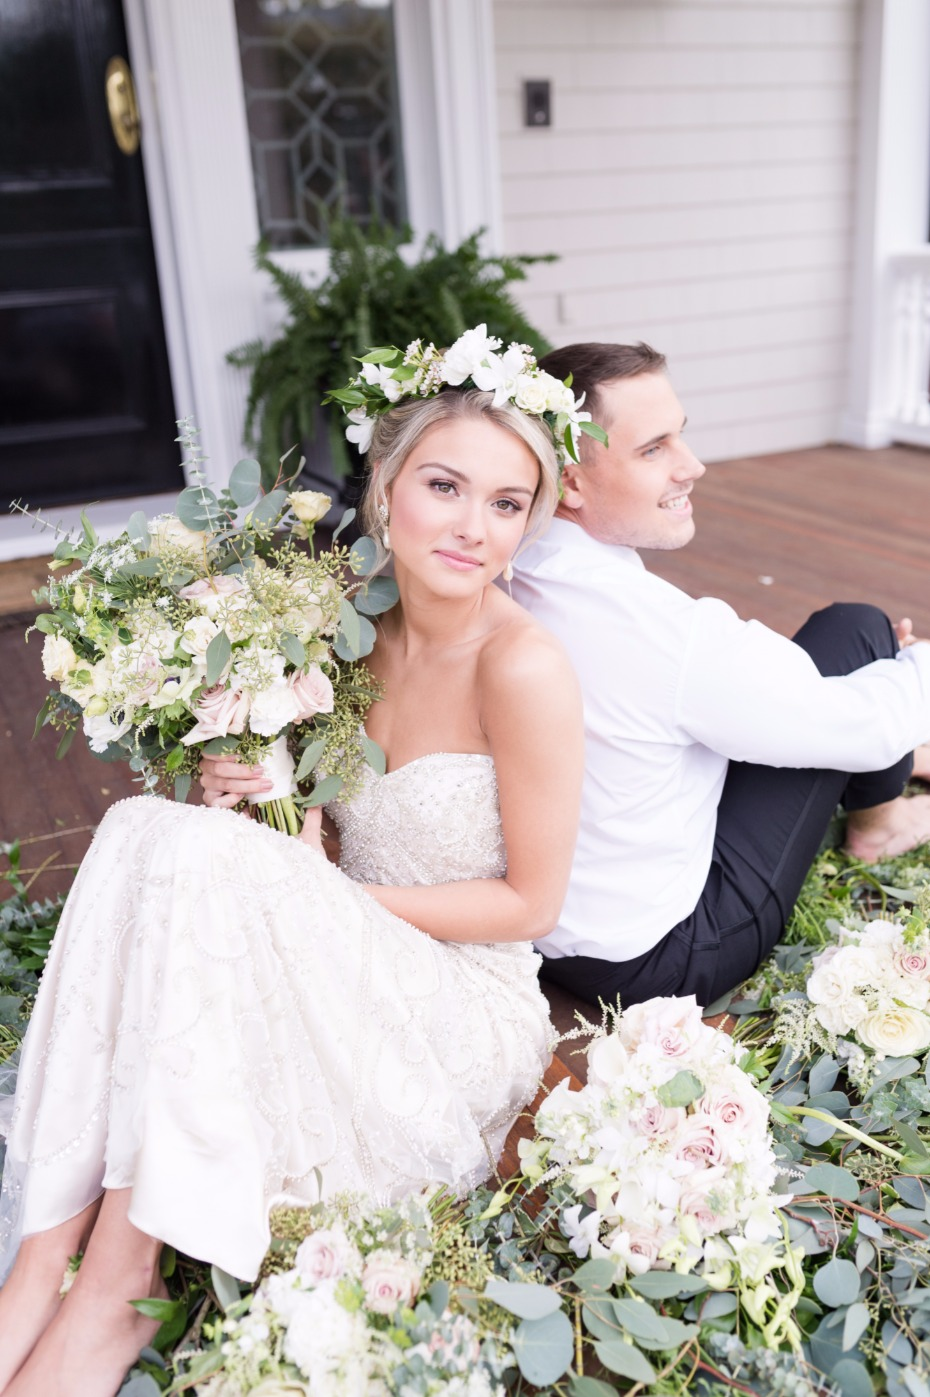 wedding photo ideas for the bride and groom